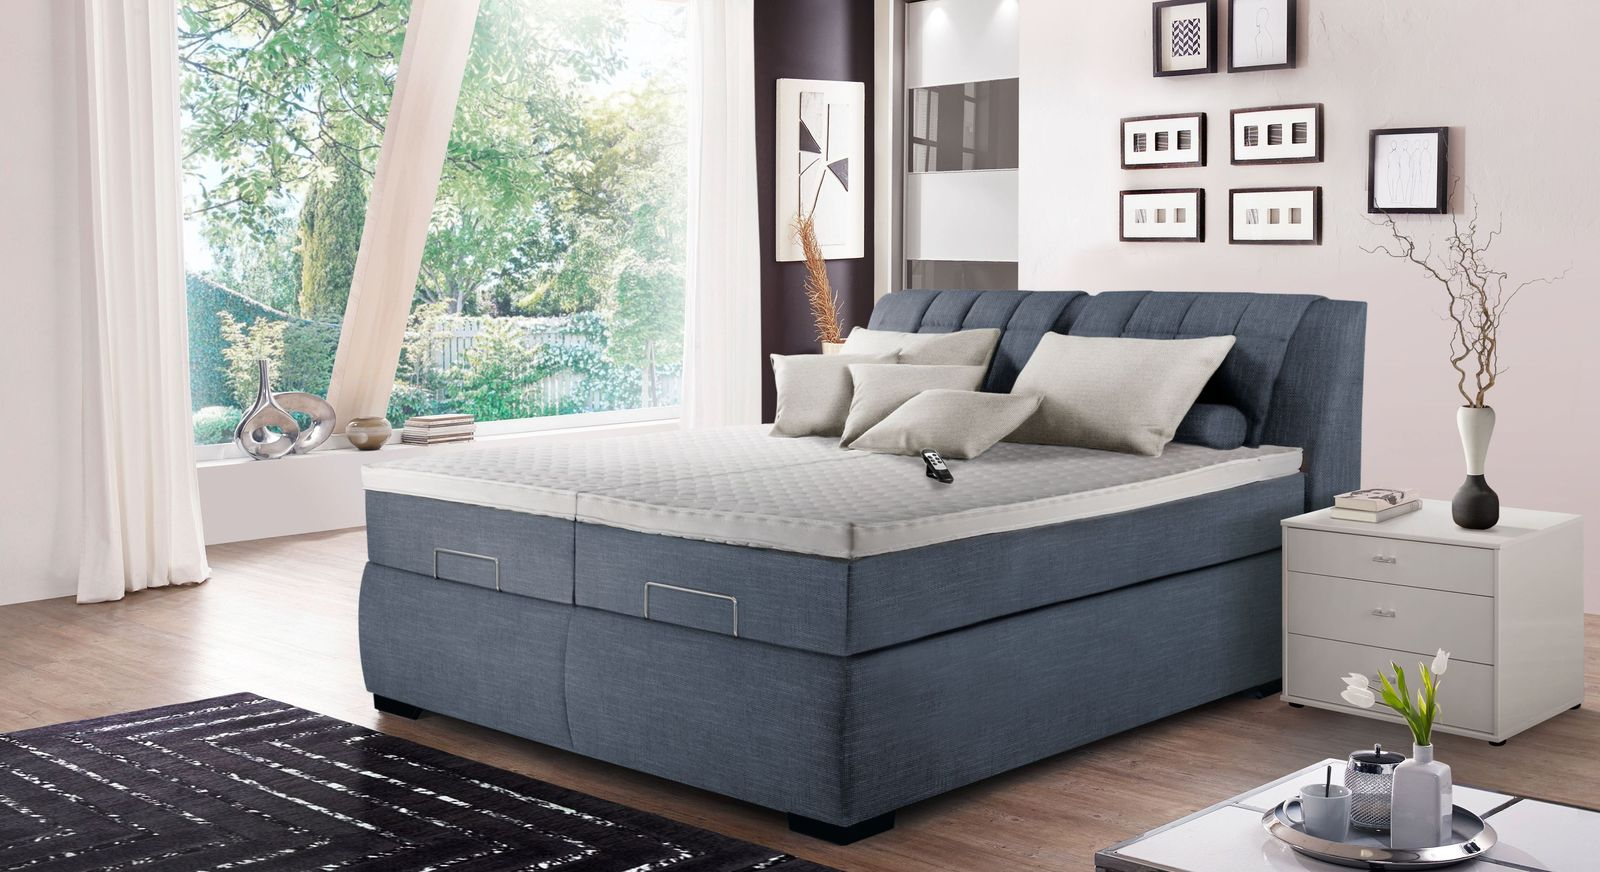 Elektro-Boxspringbett Fibreno mit Topper Alternative